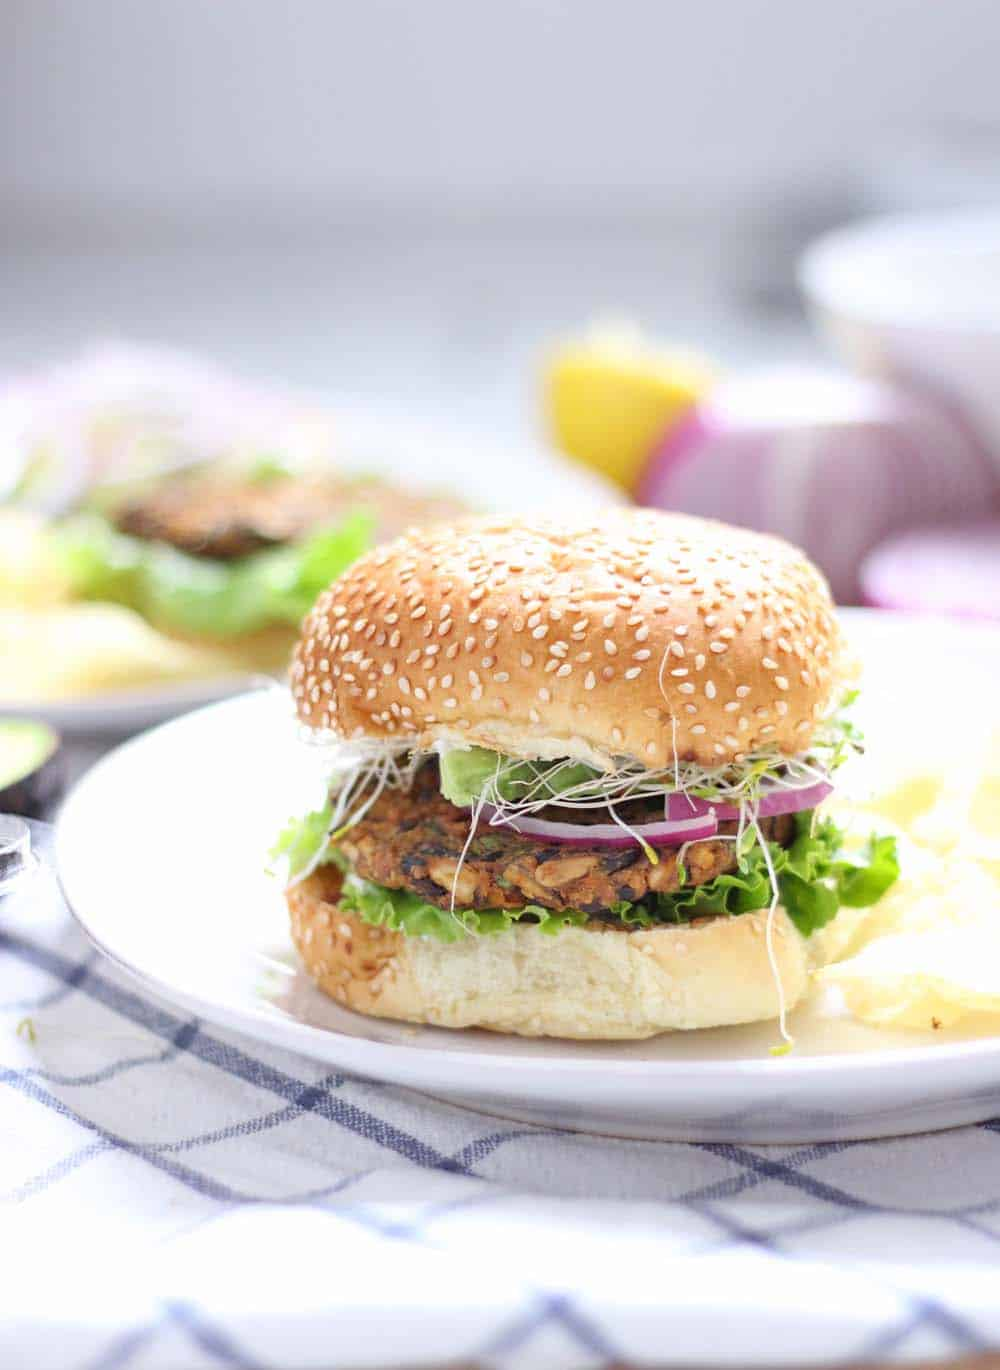 Sweet Potato and Black Bean Veggie Burgers | These veggie burgers are full of flavor and amazingly healthy. They have a great texture and they hold up well when you bake them without being dry or mushy! And they are SO easy to make!